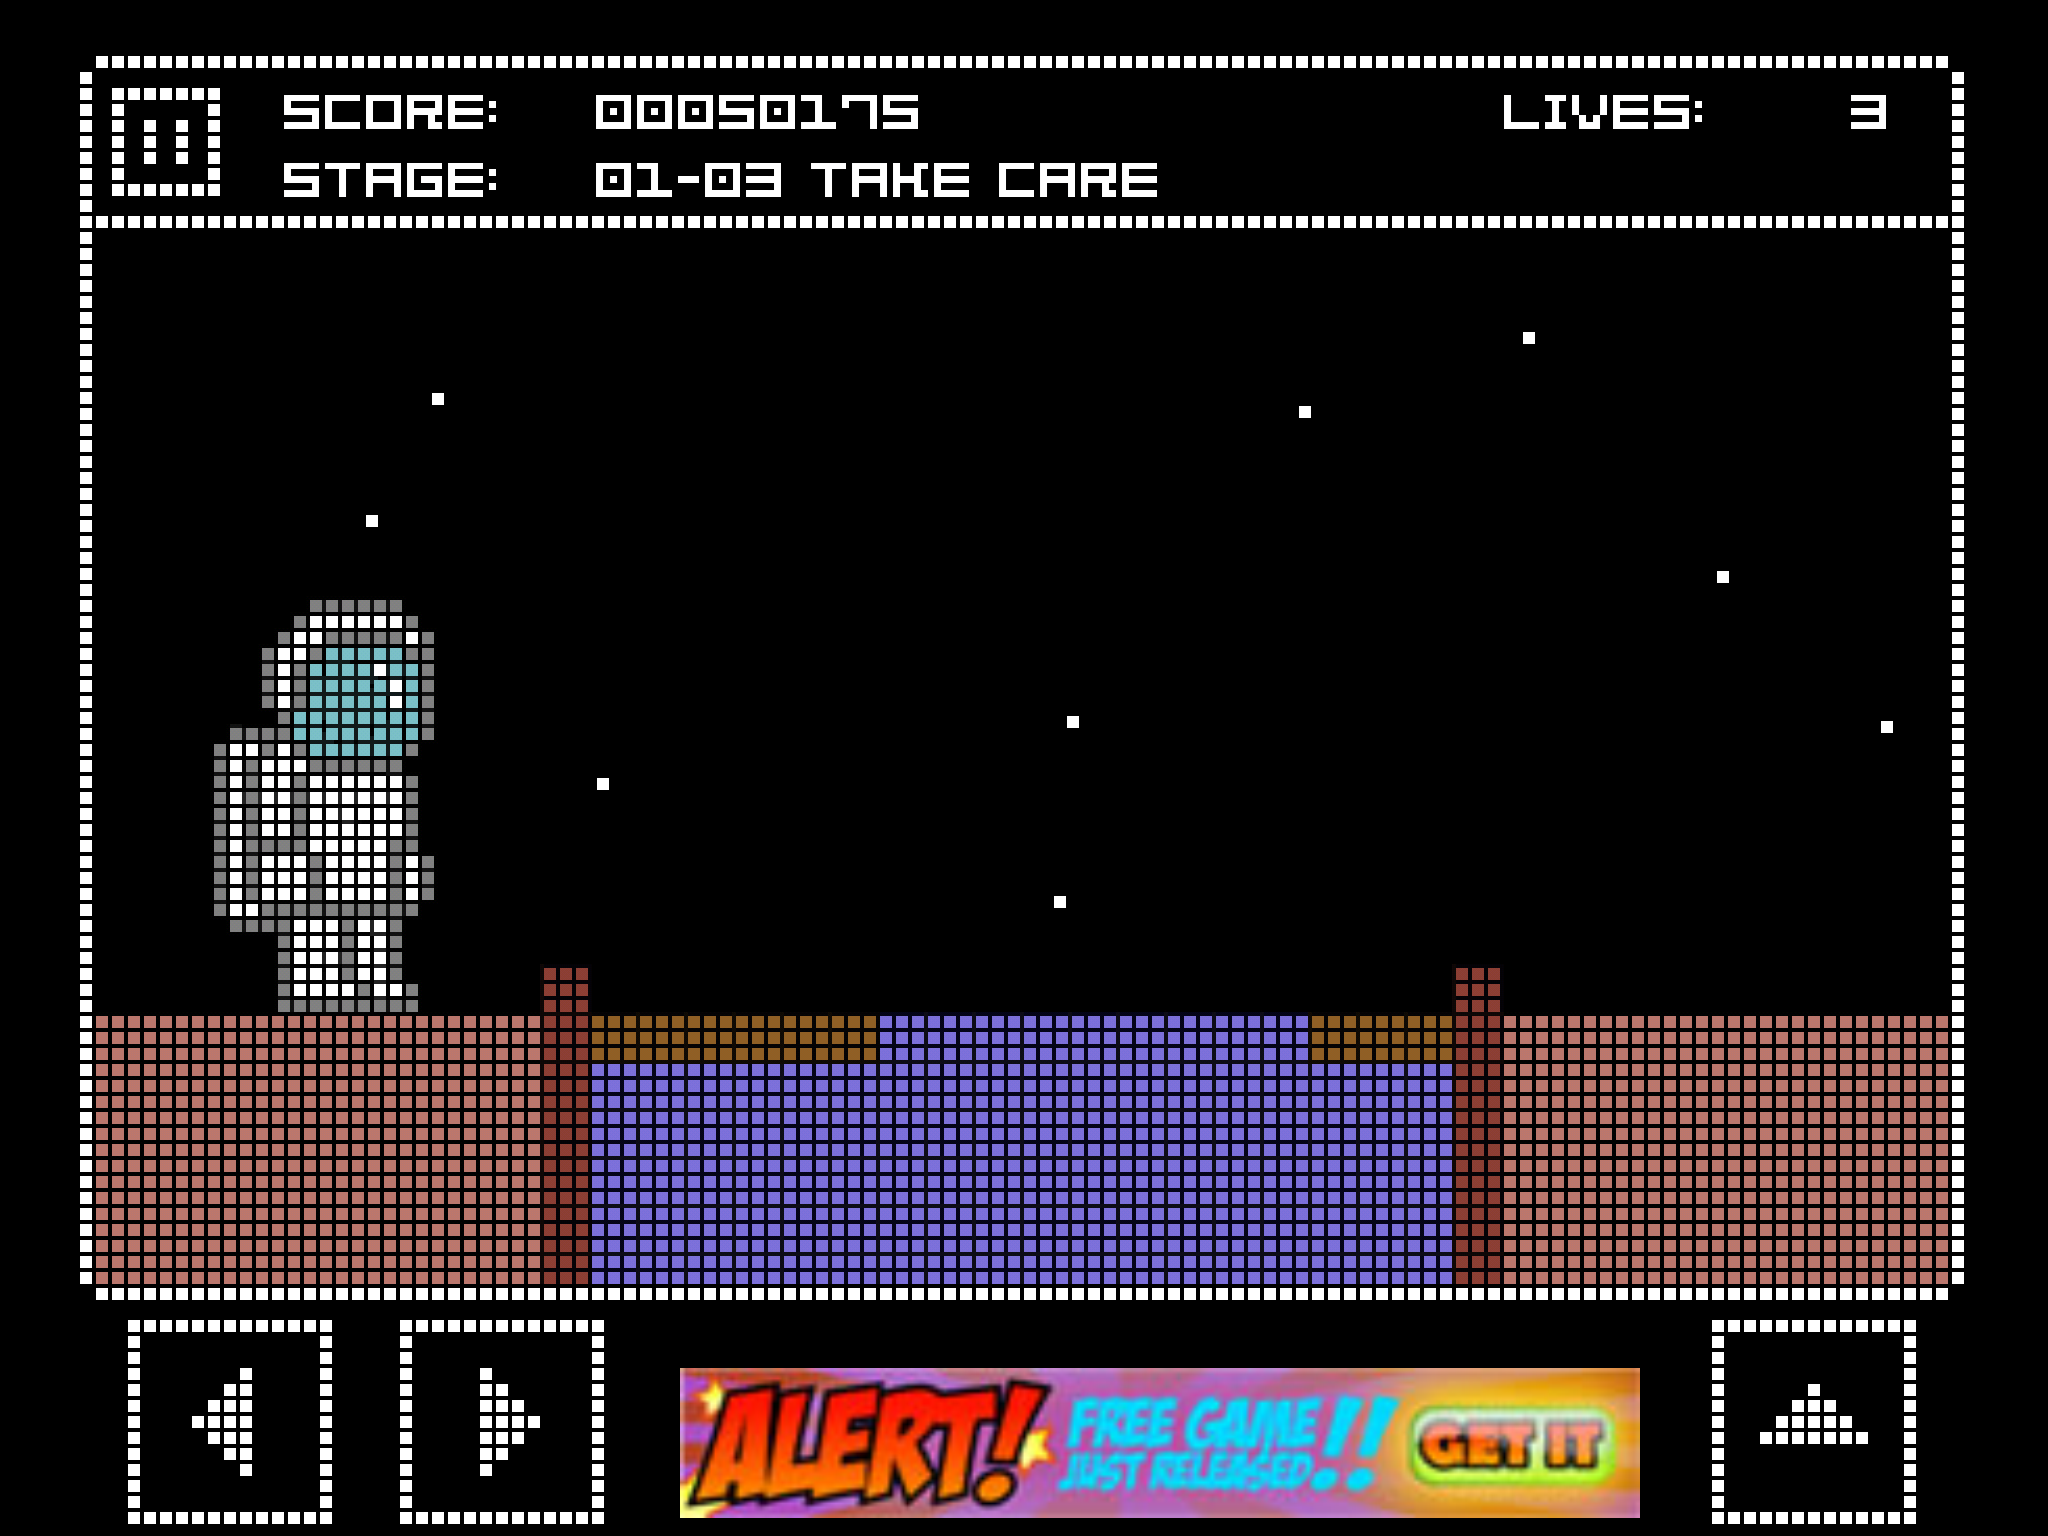 Popular Retro Game Gets Launched Into Outer Space With Mars Quest